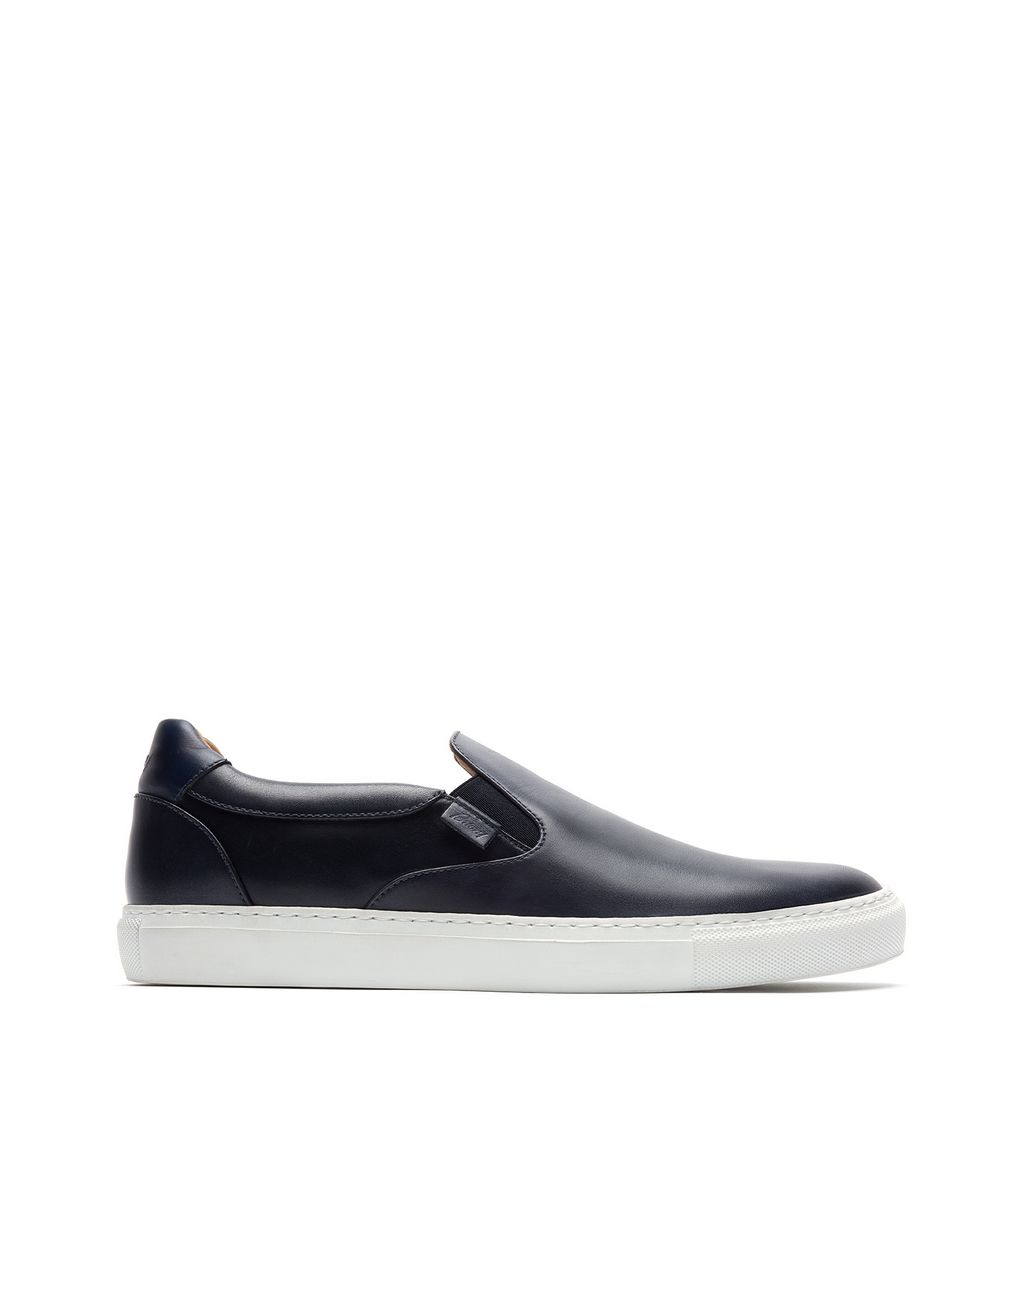 BRIONI Navy-Blue Slip-on Sneaker Sneakers Man f